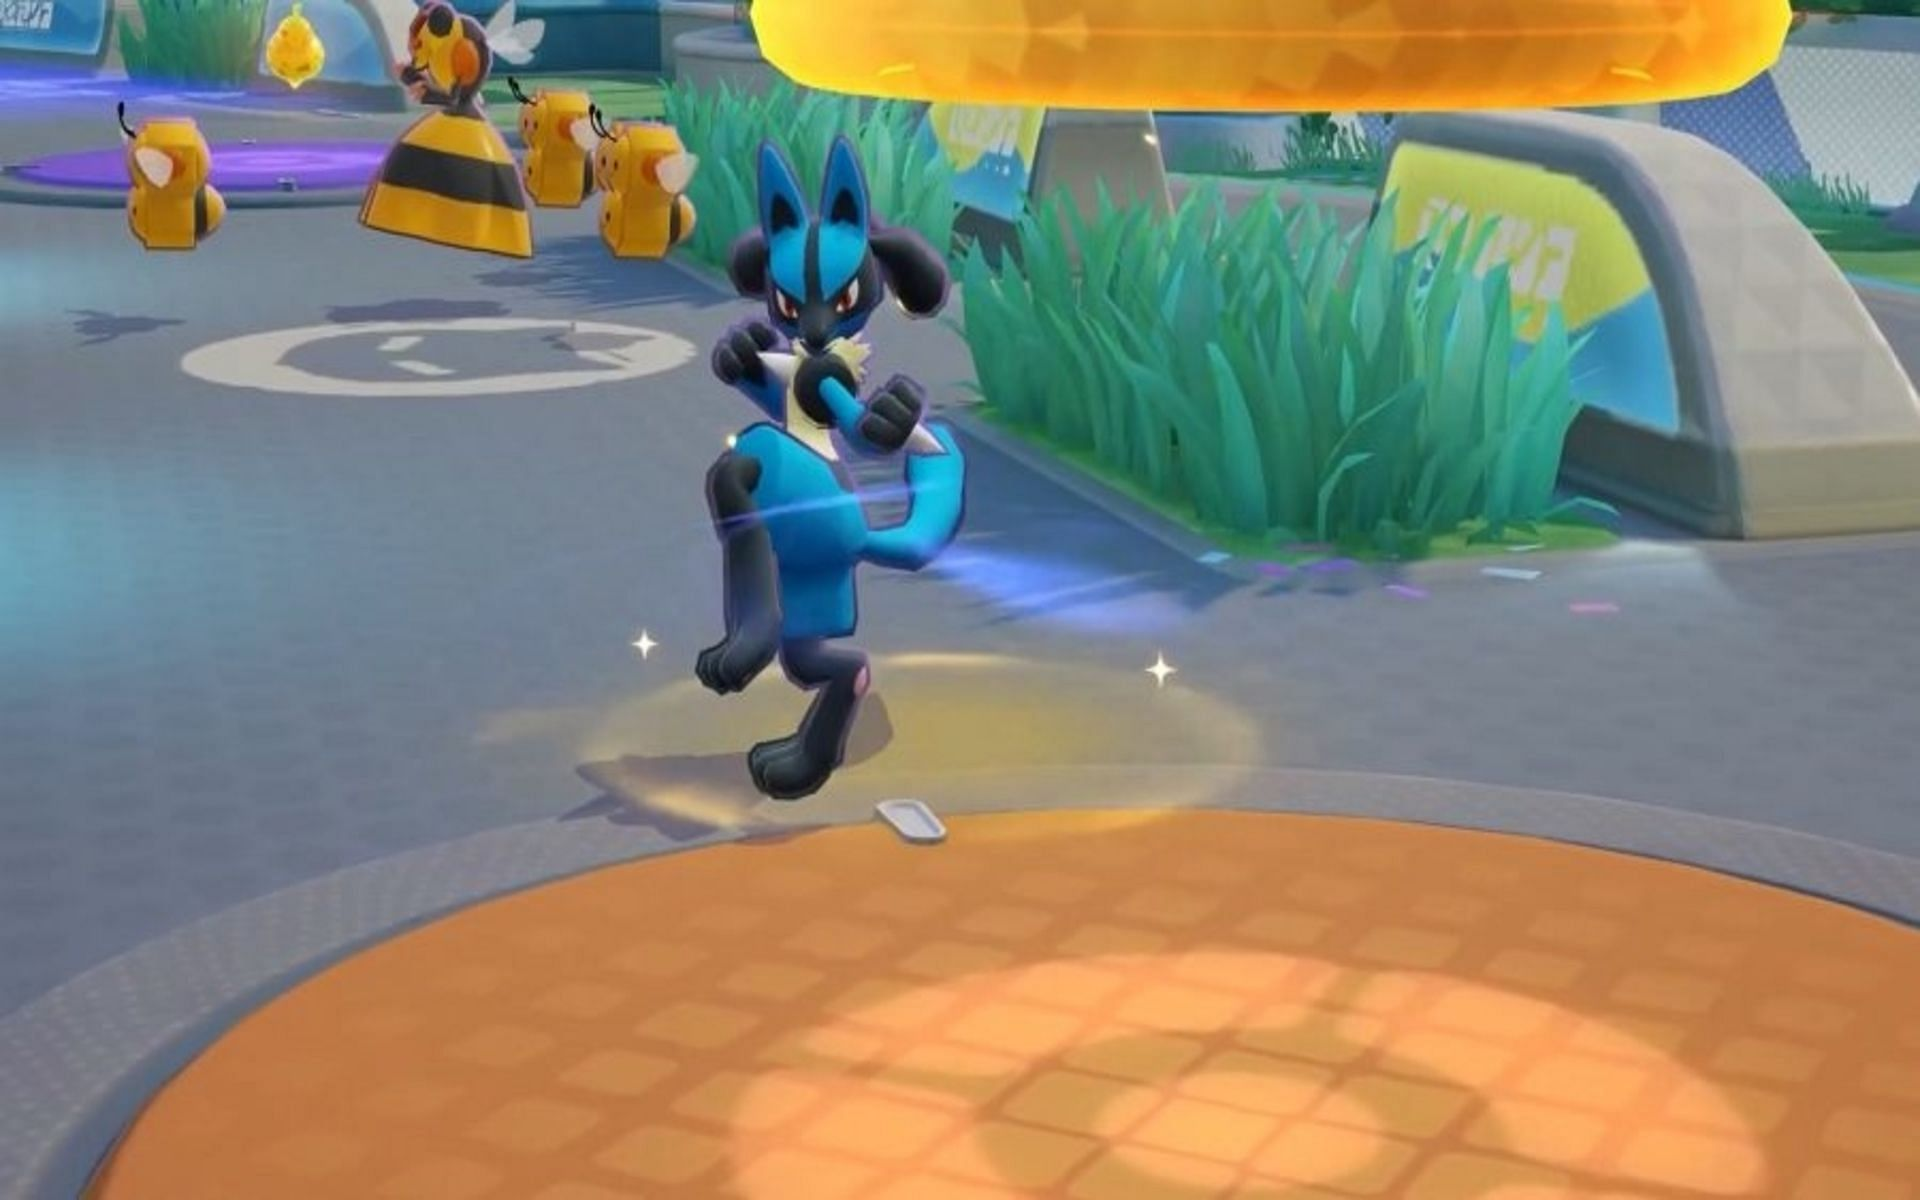 Lucario can use Power-Up Punch to steal Combee and Vespiqueen easily (Image via TiMi Studios)